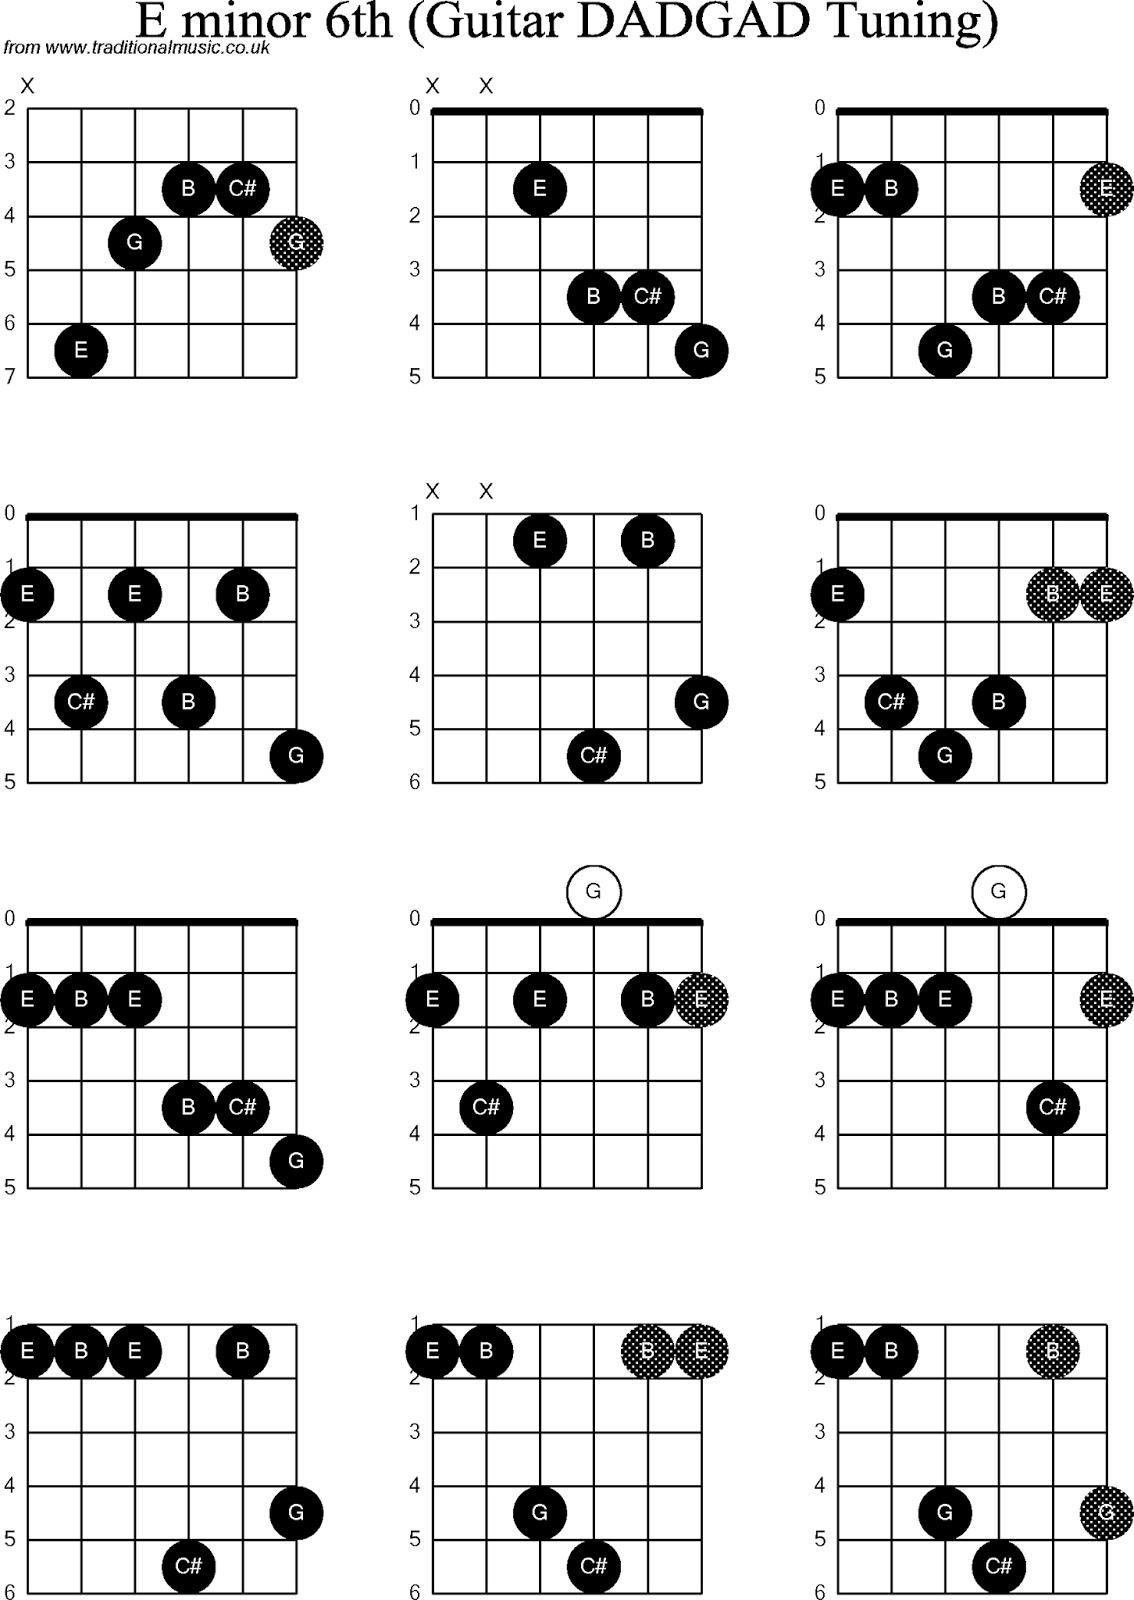 6th chords for guitar